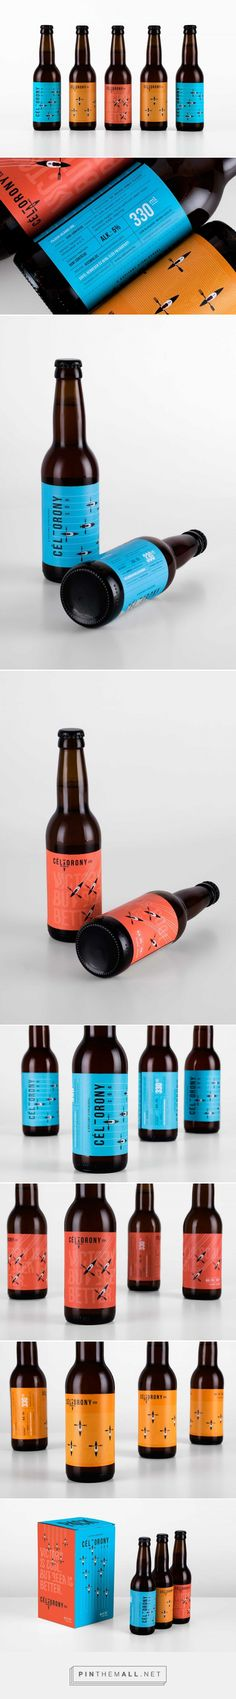 Céltorony Craft Beer Selection - Packaging of the World - Creative Package Design Gallery - http://www.packagingoftheworld.com/2017/04/celtorony-craft-beer-selection.html